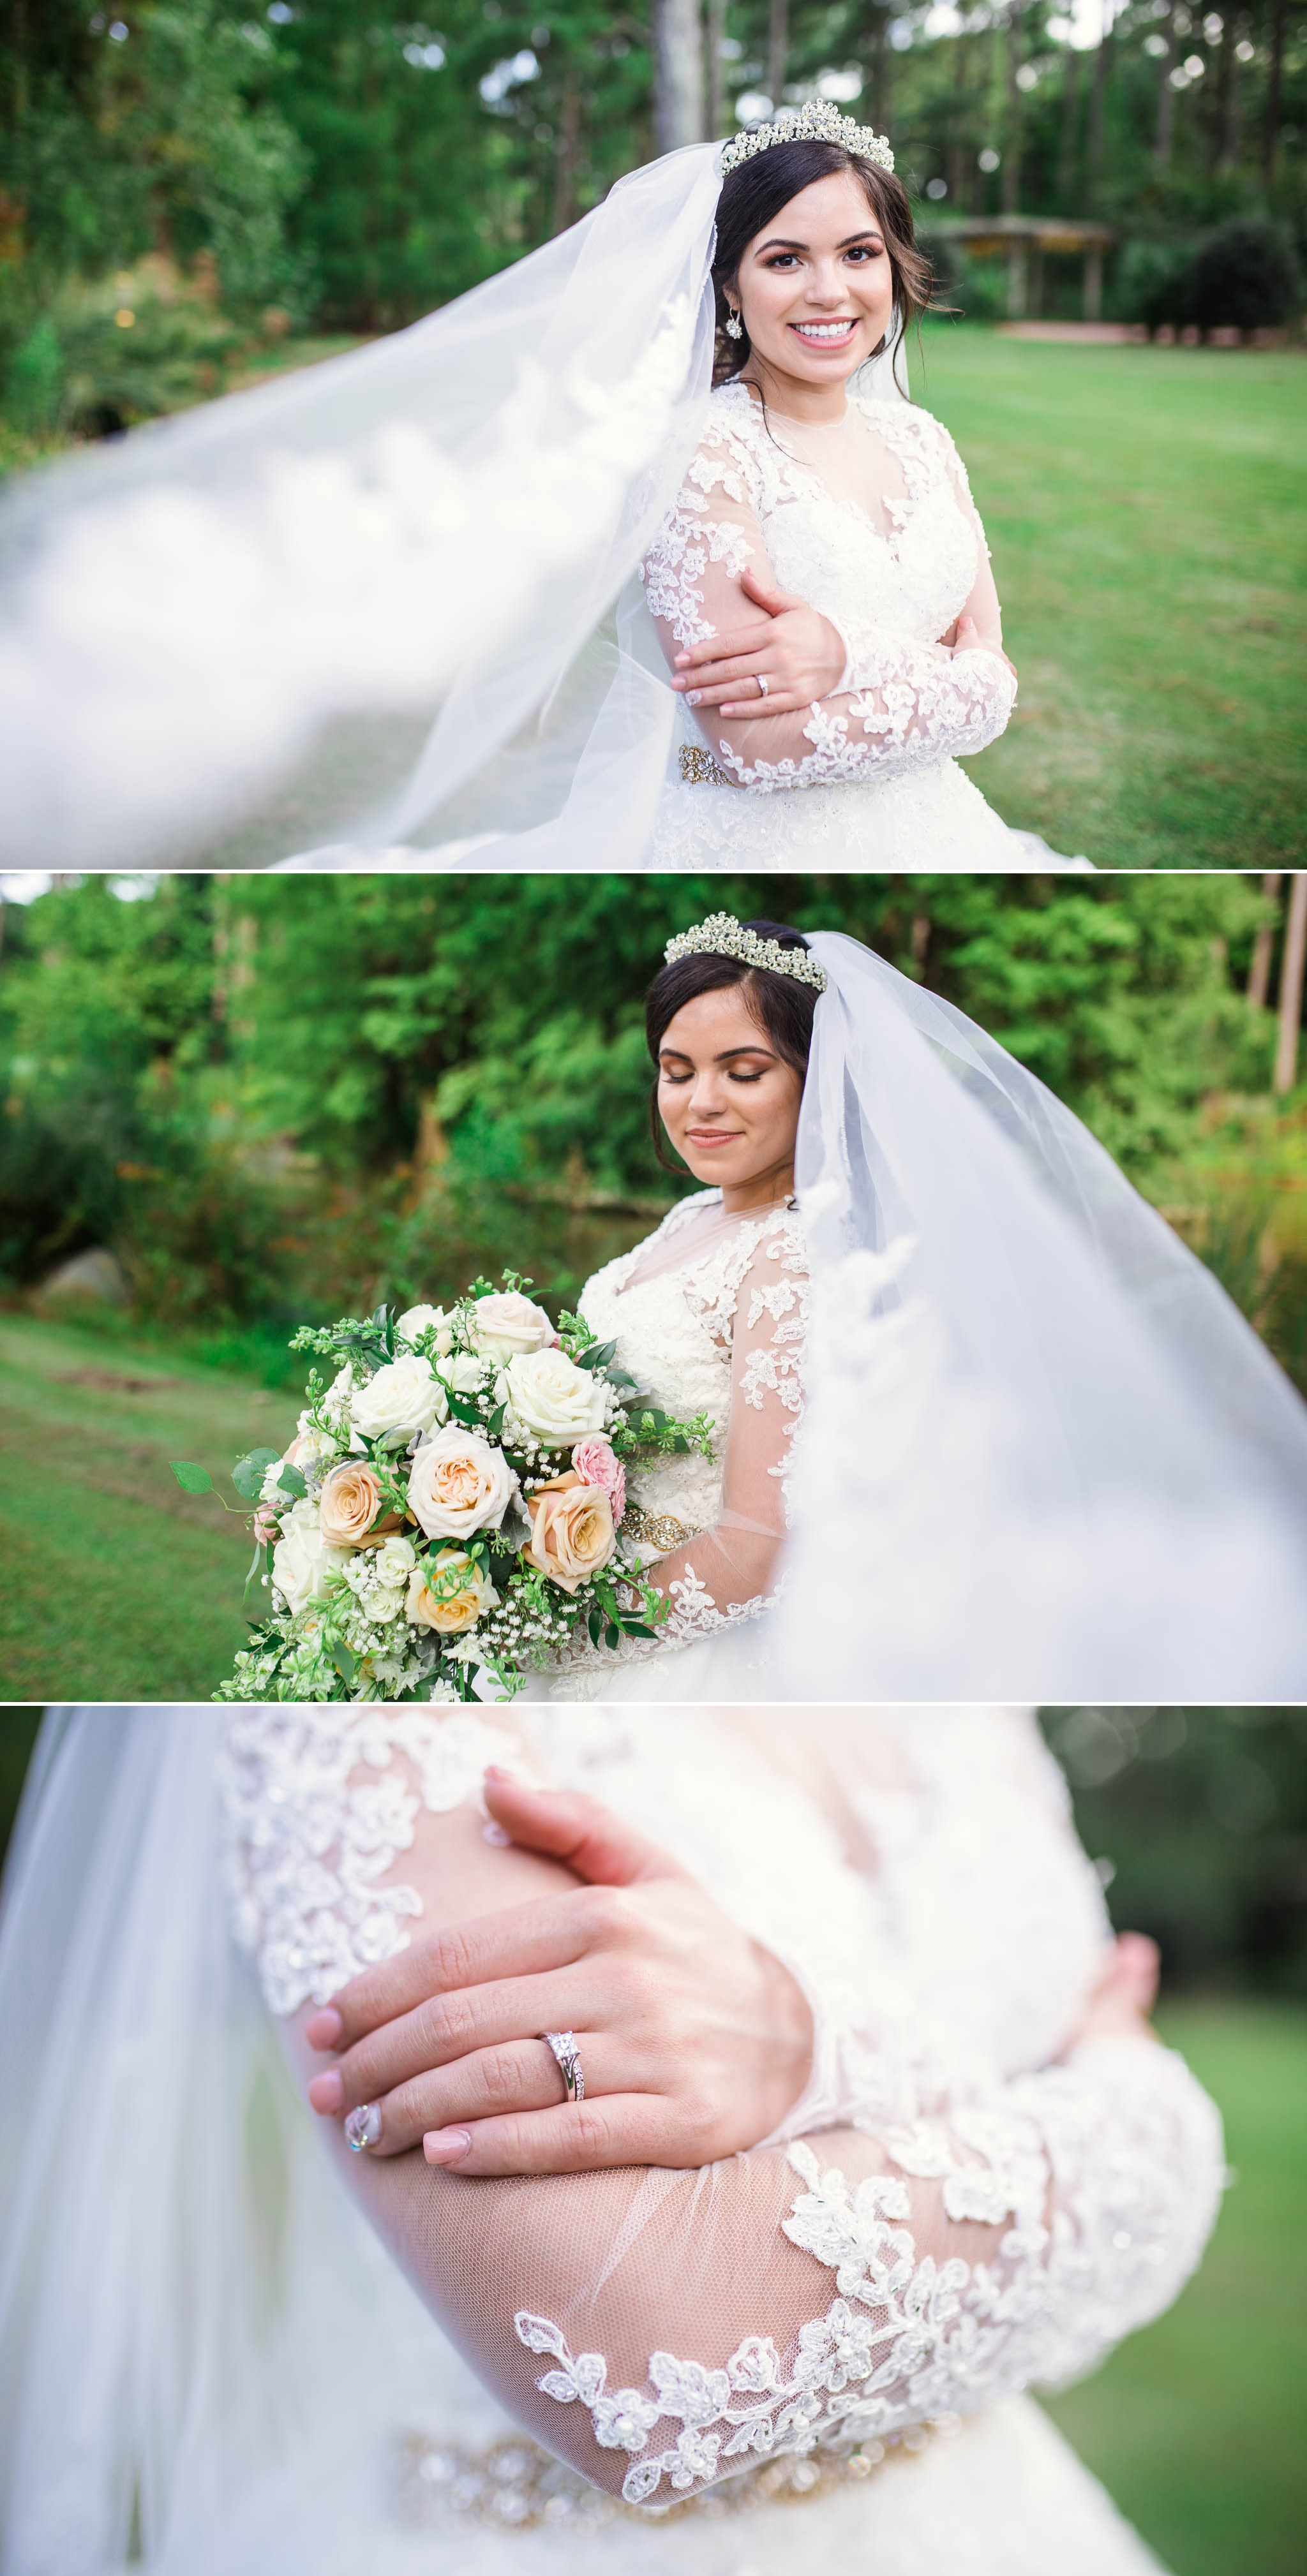 Bridal Portraits - Yansi + Eddie - Wedding at Cape Fear Botanical Garden - Fayetteville North Carolina Photographer